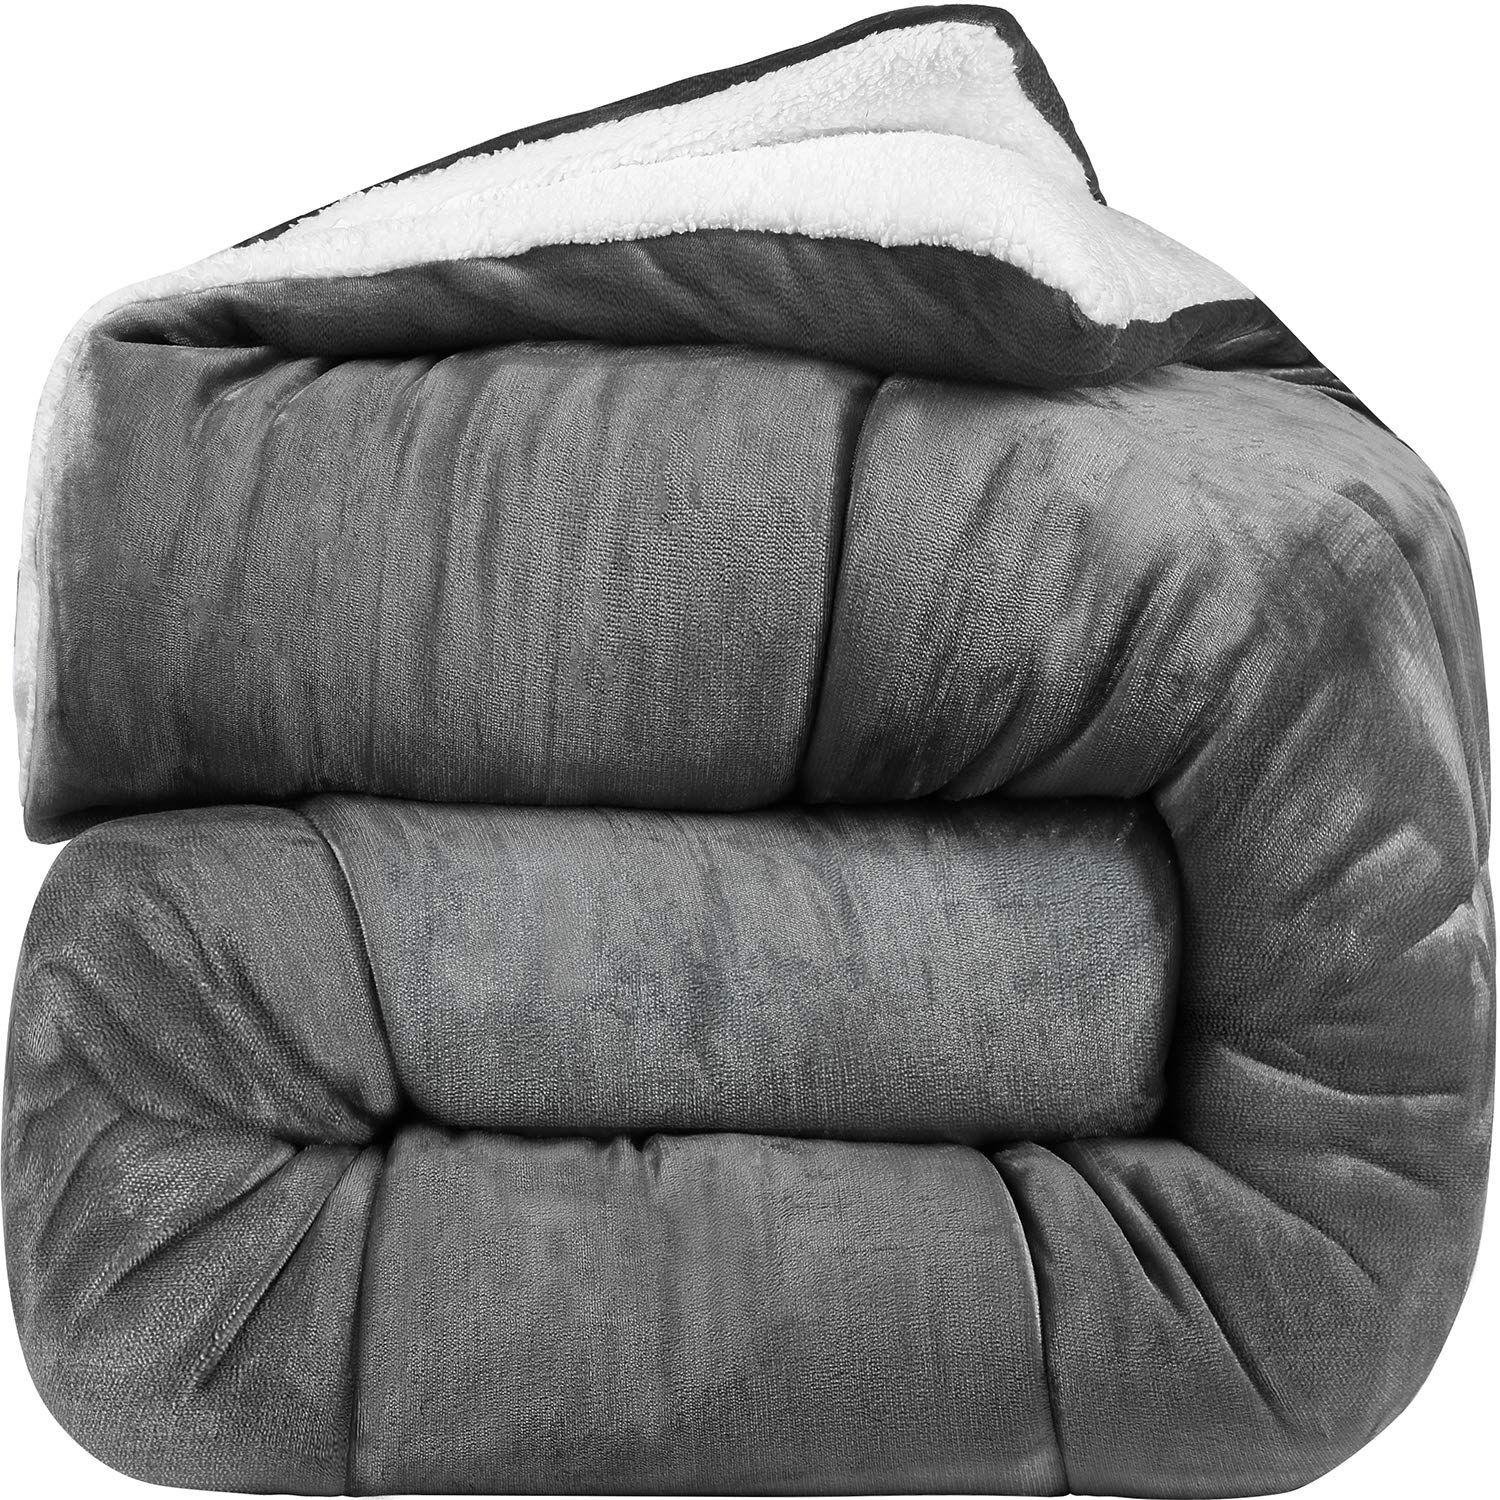 Utopia Bedding - All Season Alternative Fleece Comforter - Goose Down Sherpa Comforter King - Grey